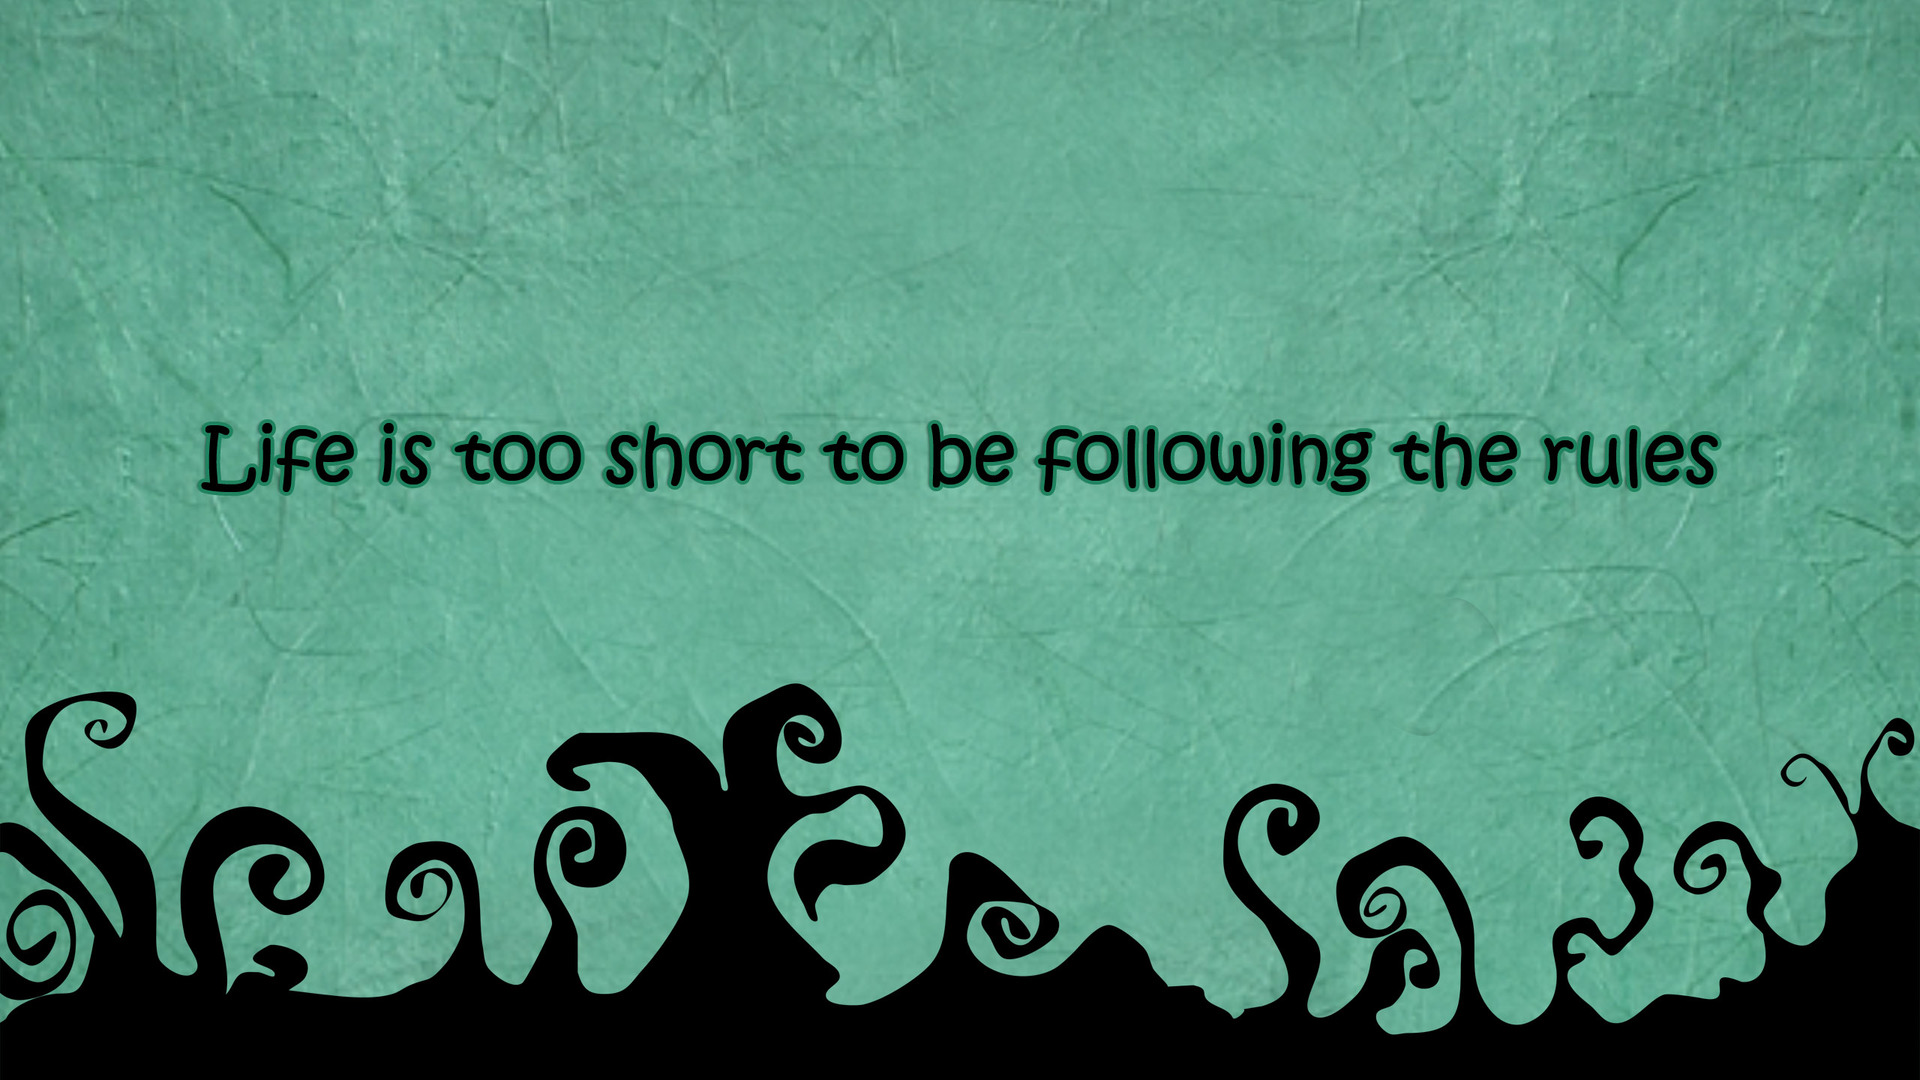 life-is-too-short-life-quote